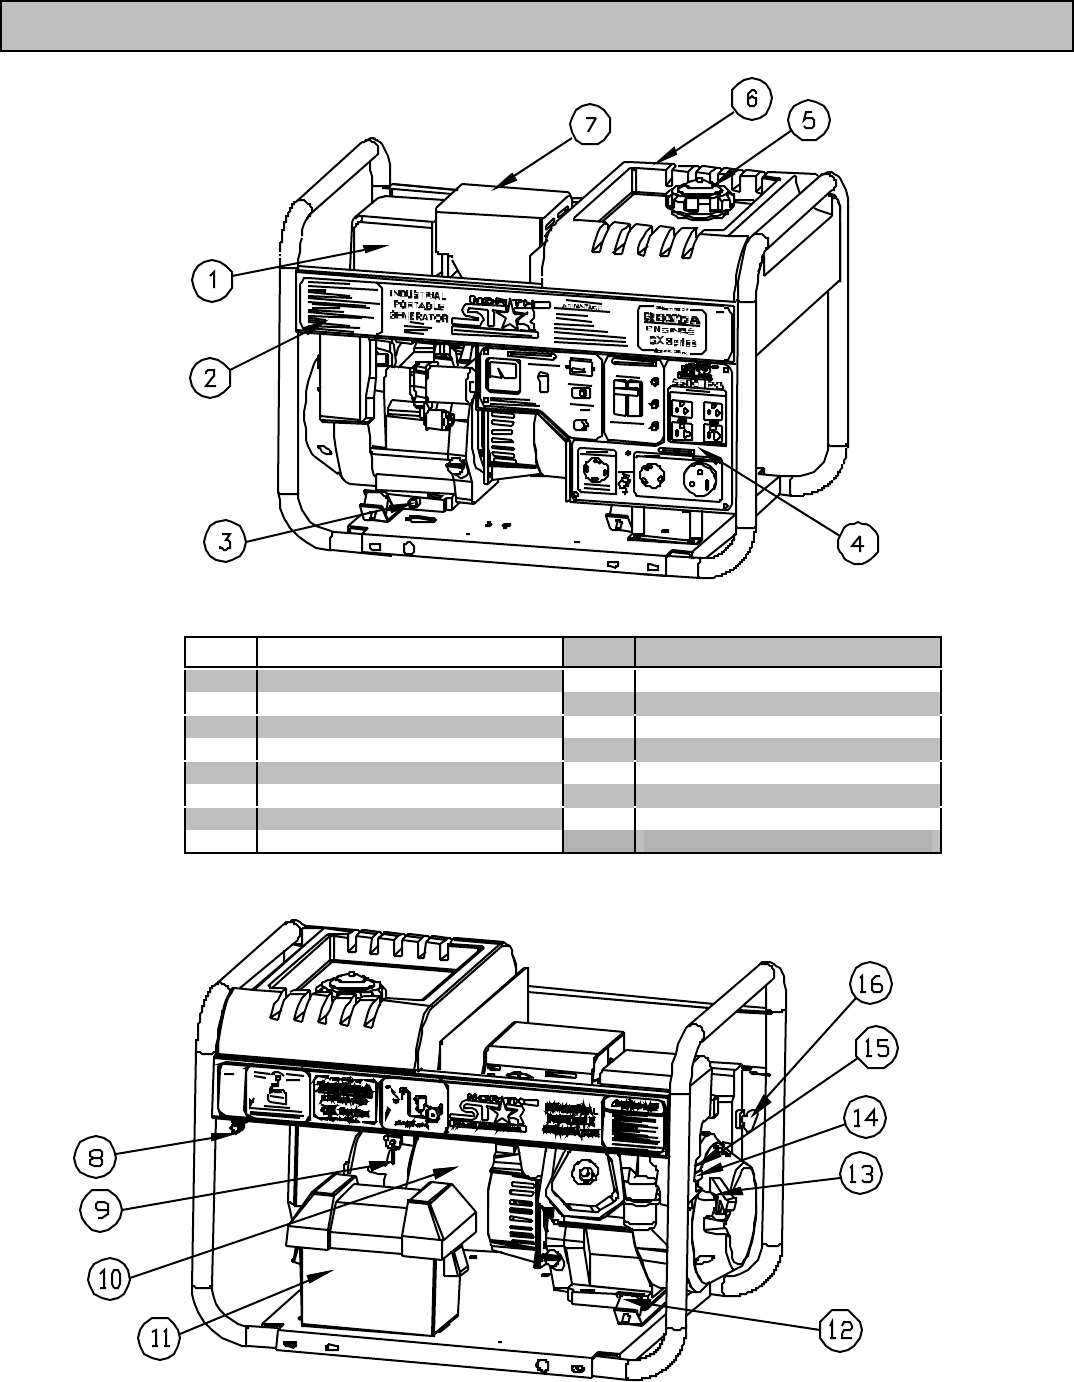 Page 4 of North Star Portable Generator 5500 IPG User